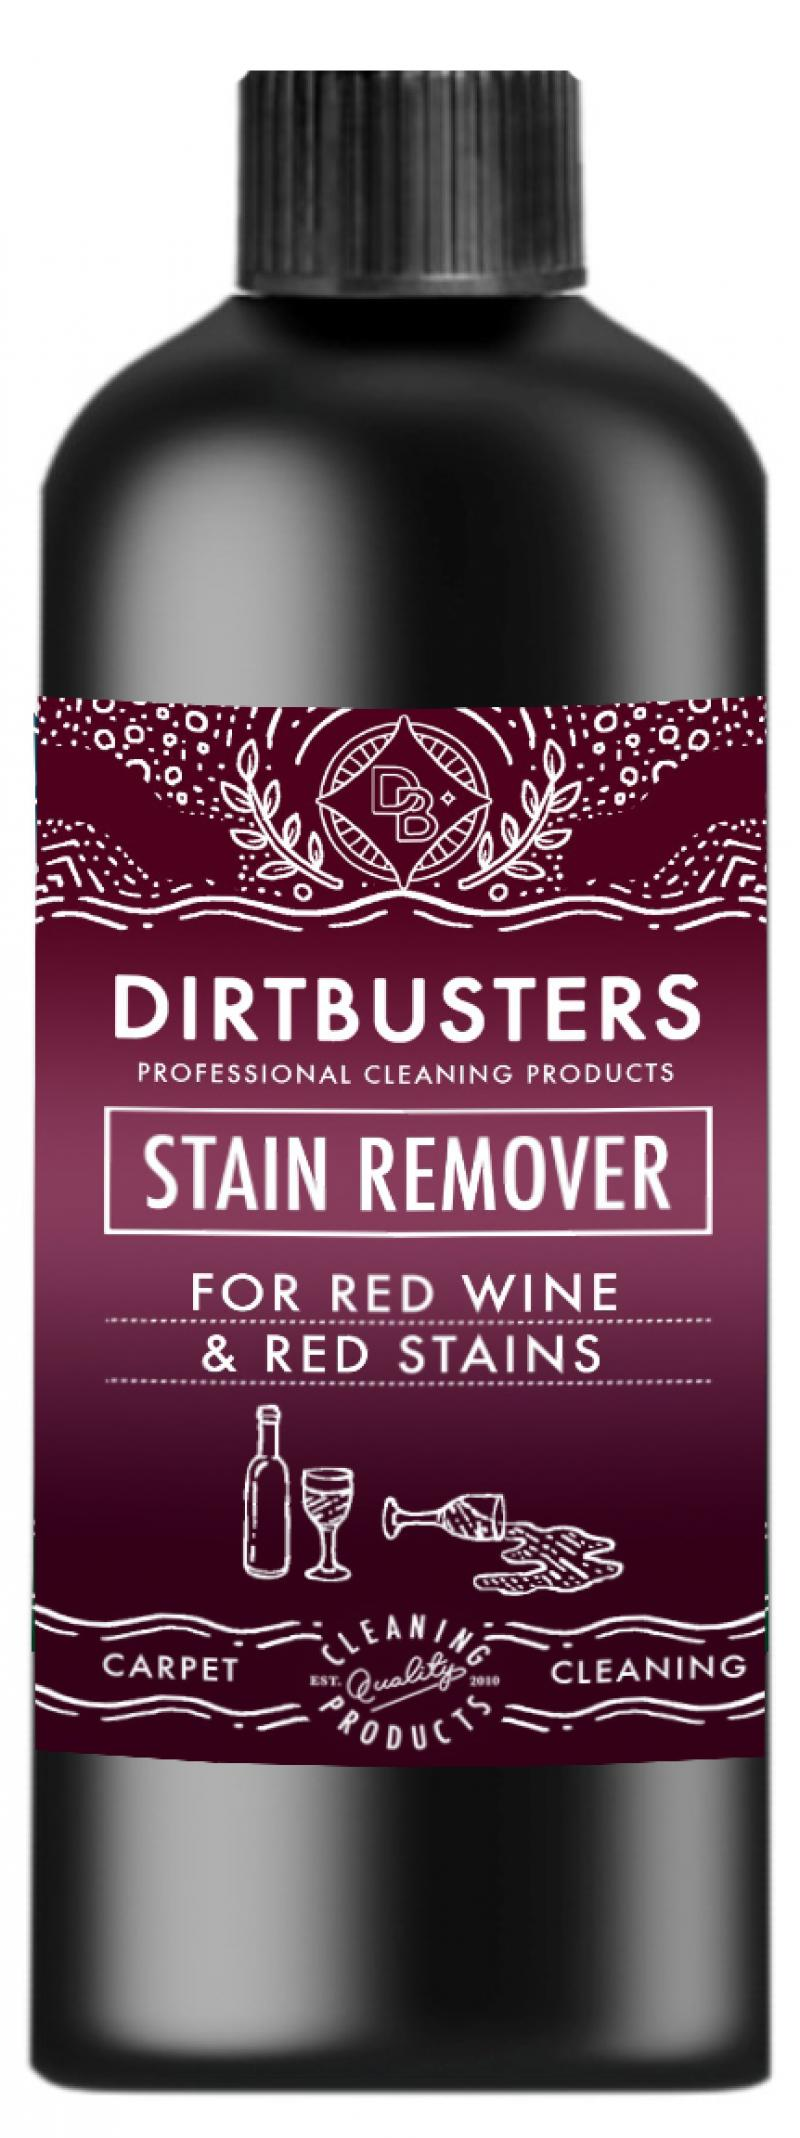 Carpet Cleaning Spot & Stain Removers